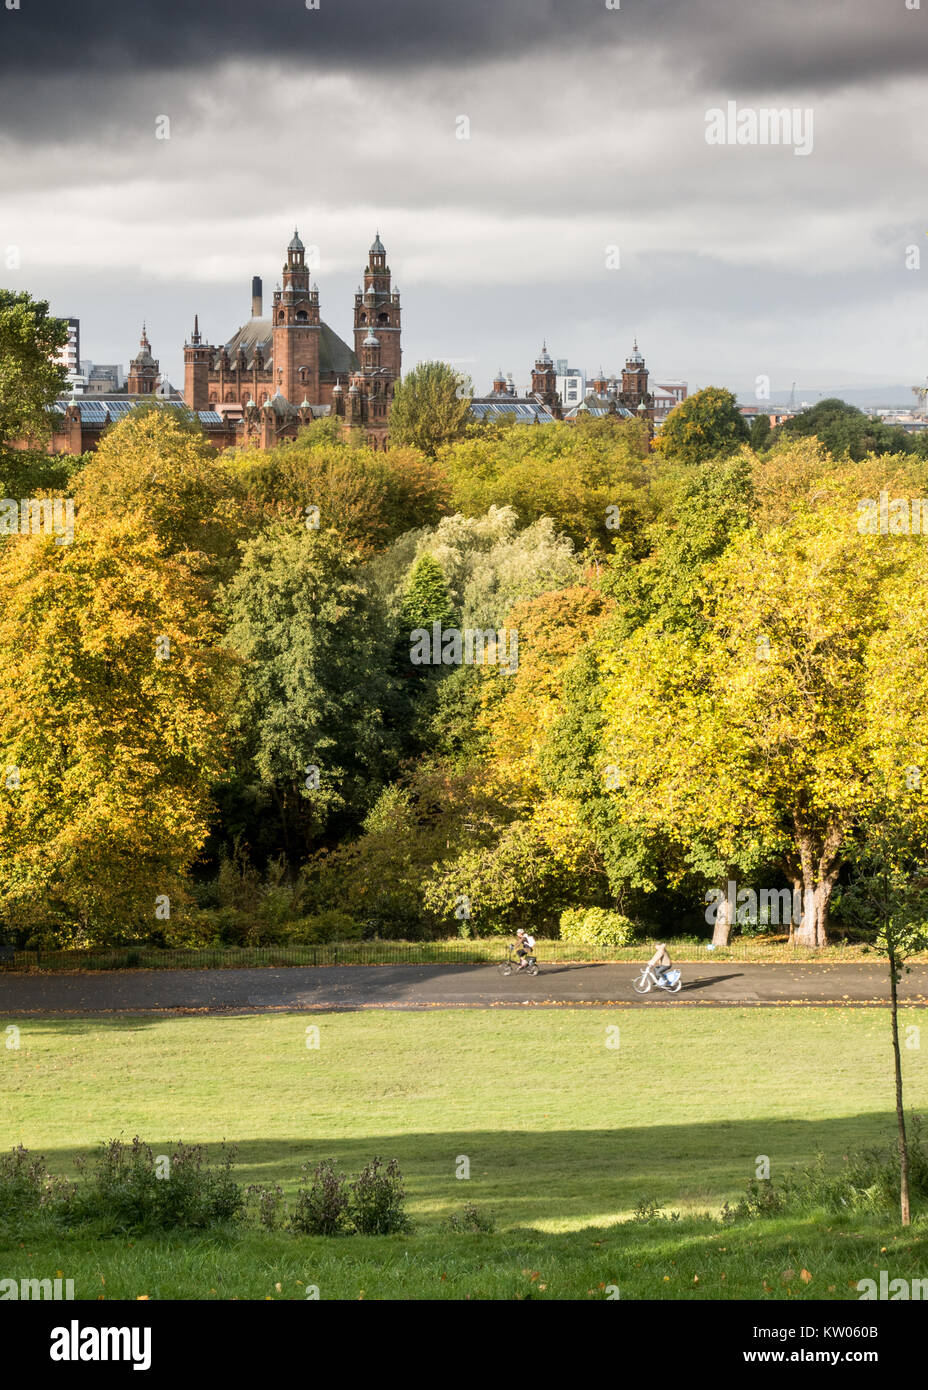 Glasgow, Scotland, UK - September 30, 2017: Cyclists ride through Kelvingrove Park in the west end of Glasgow on - Stock Image